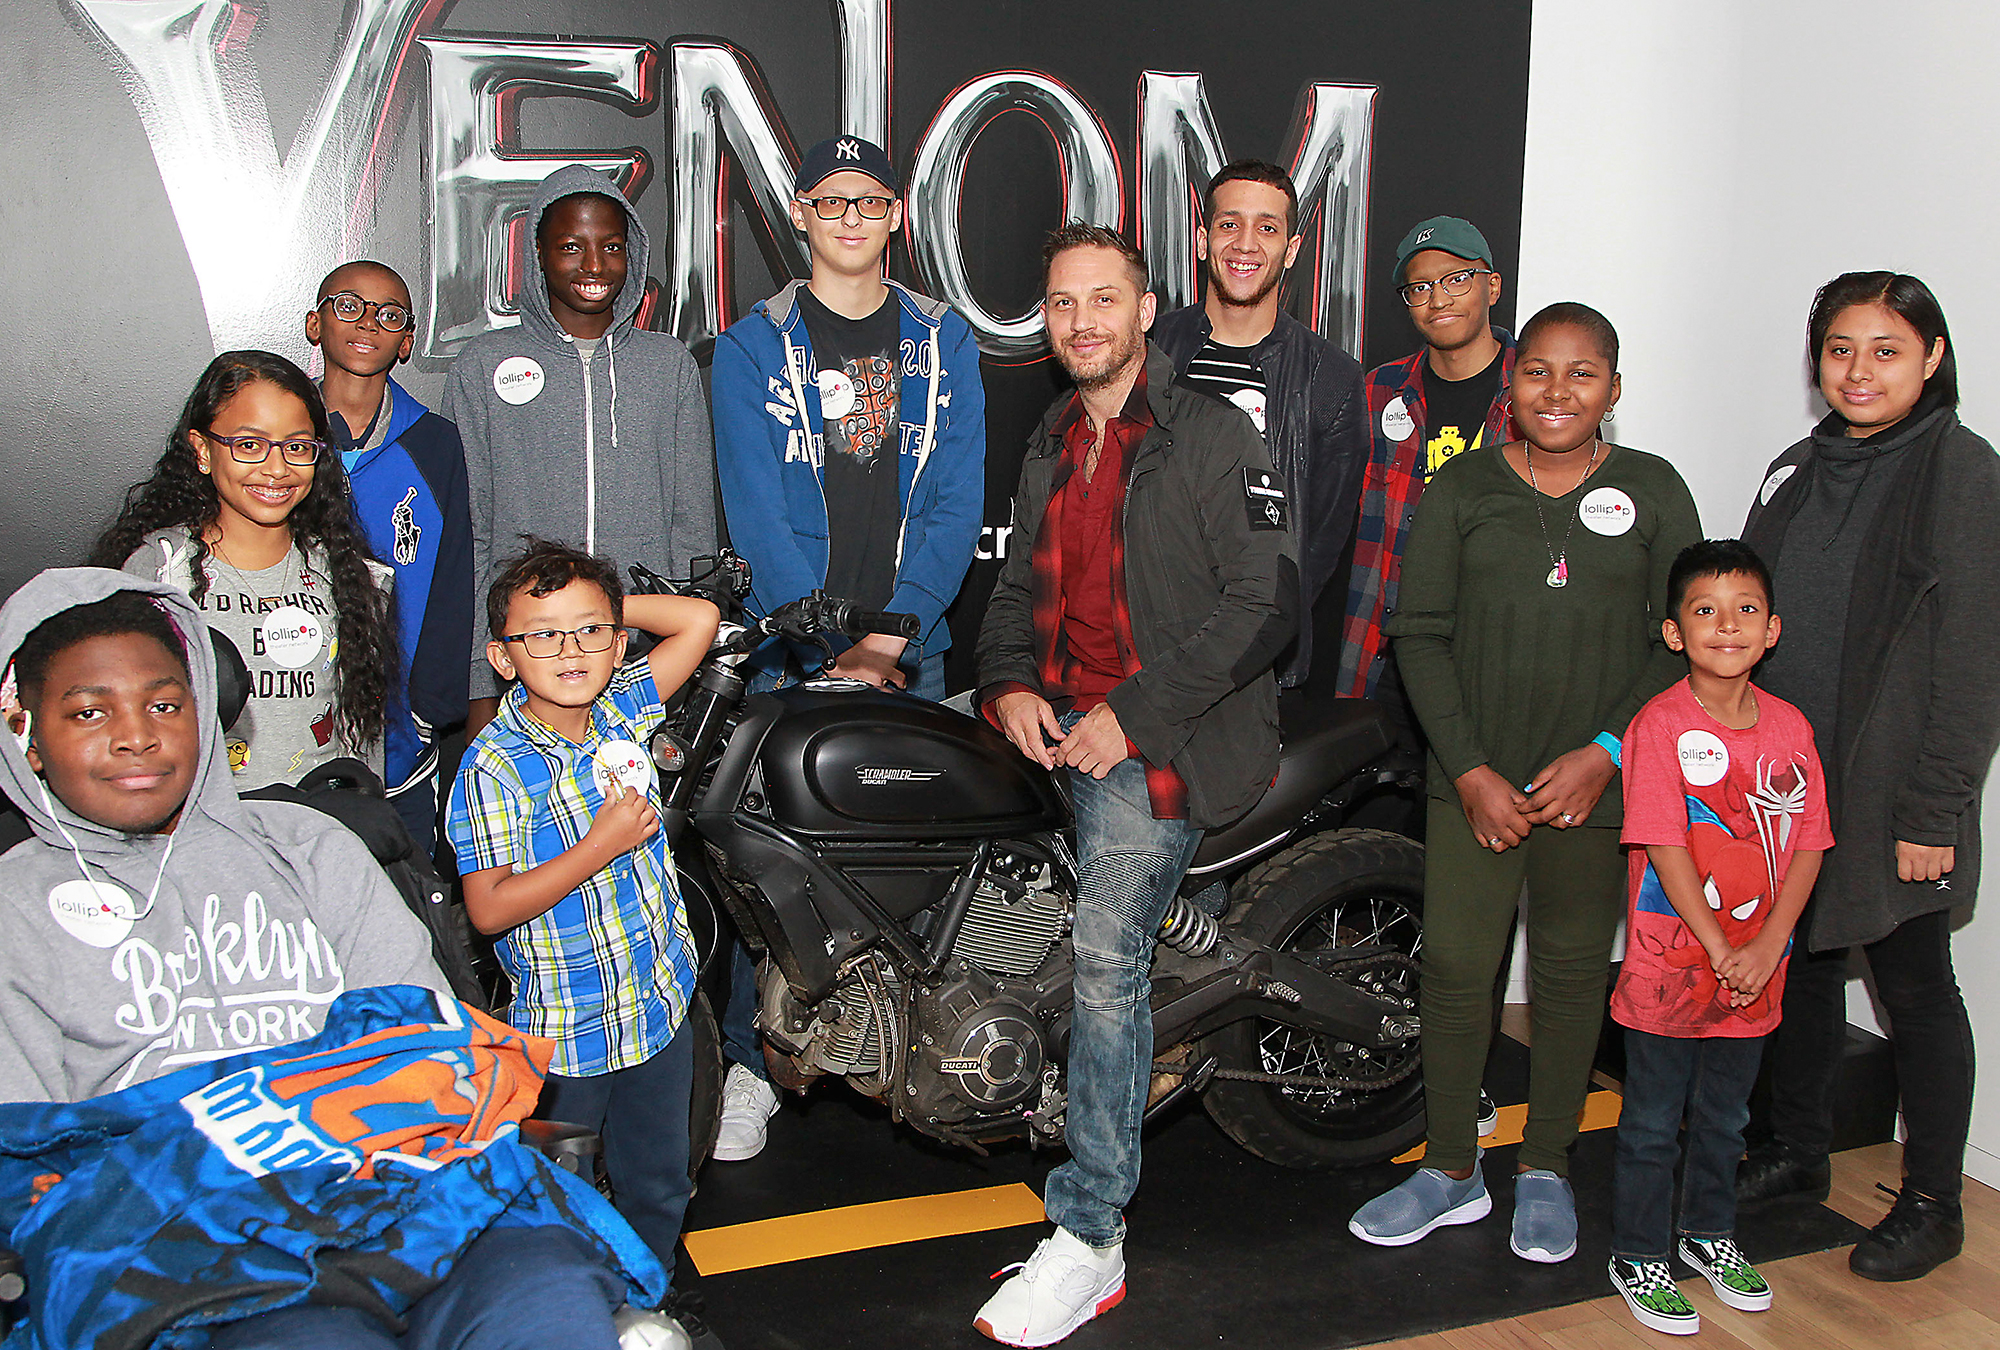 Lollipop Theater Network hosts outpatient visit to Sony Square NYC Venom activation with special guest Tom Hardy